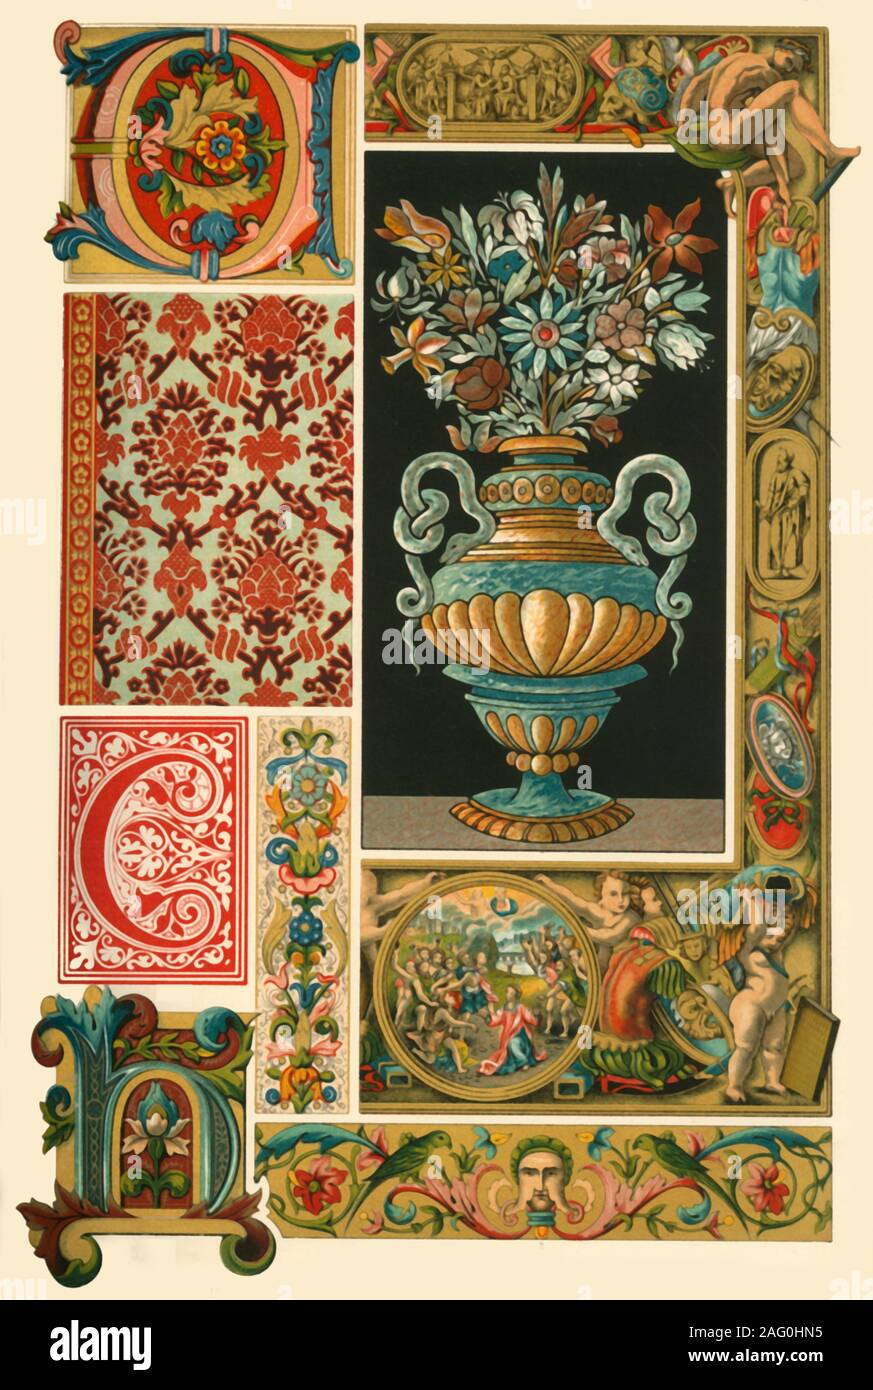 "Italian Renaissance illumination, weaving, and marble-mosaic, (1898). 'Figs 1-6: Paintings from divers manuscripts. Fig 7: Velvet-stuff in the 'Museum vaterländischer Altertümer' at Stuttgart. Fig 8: Border from a silk-stuff. Fig 9: Marble-mosaic from a table in the National Museum at Munich'. Plate 54 from ""The Historic Styles of Ornament"" translated from the German of H. Dolmetsch. [B.T. Batford, London, 1898] Stock Photo"